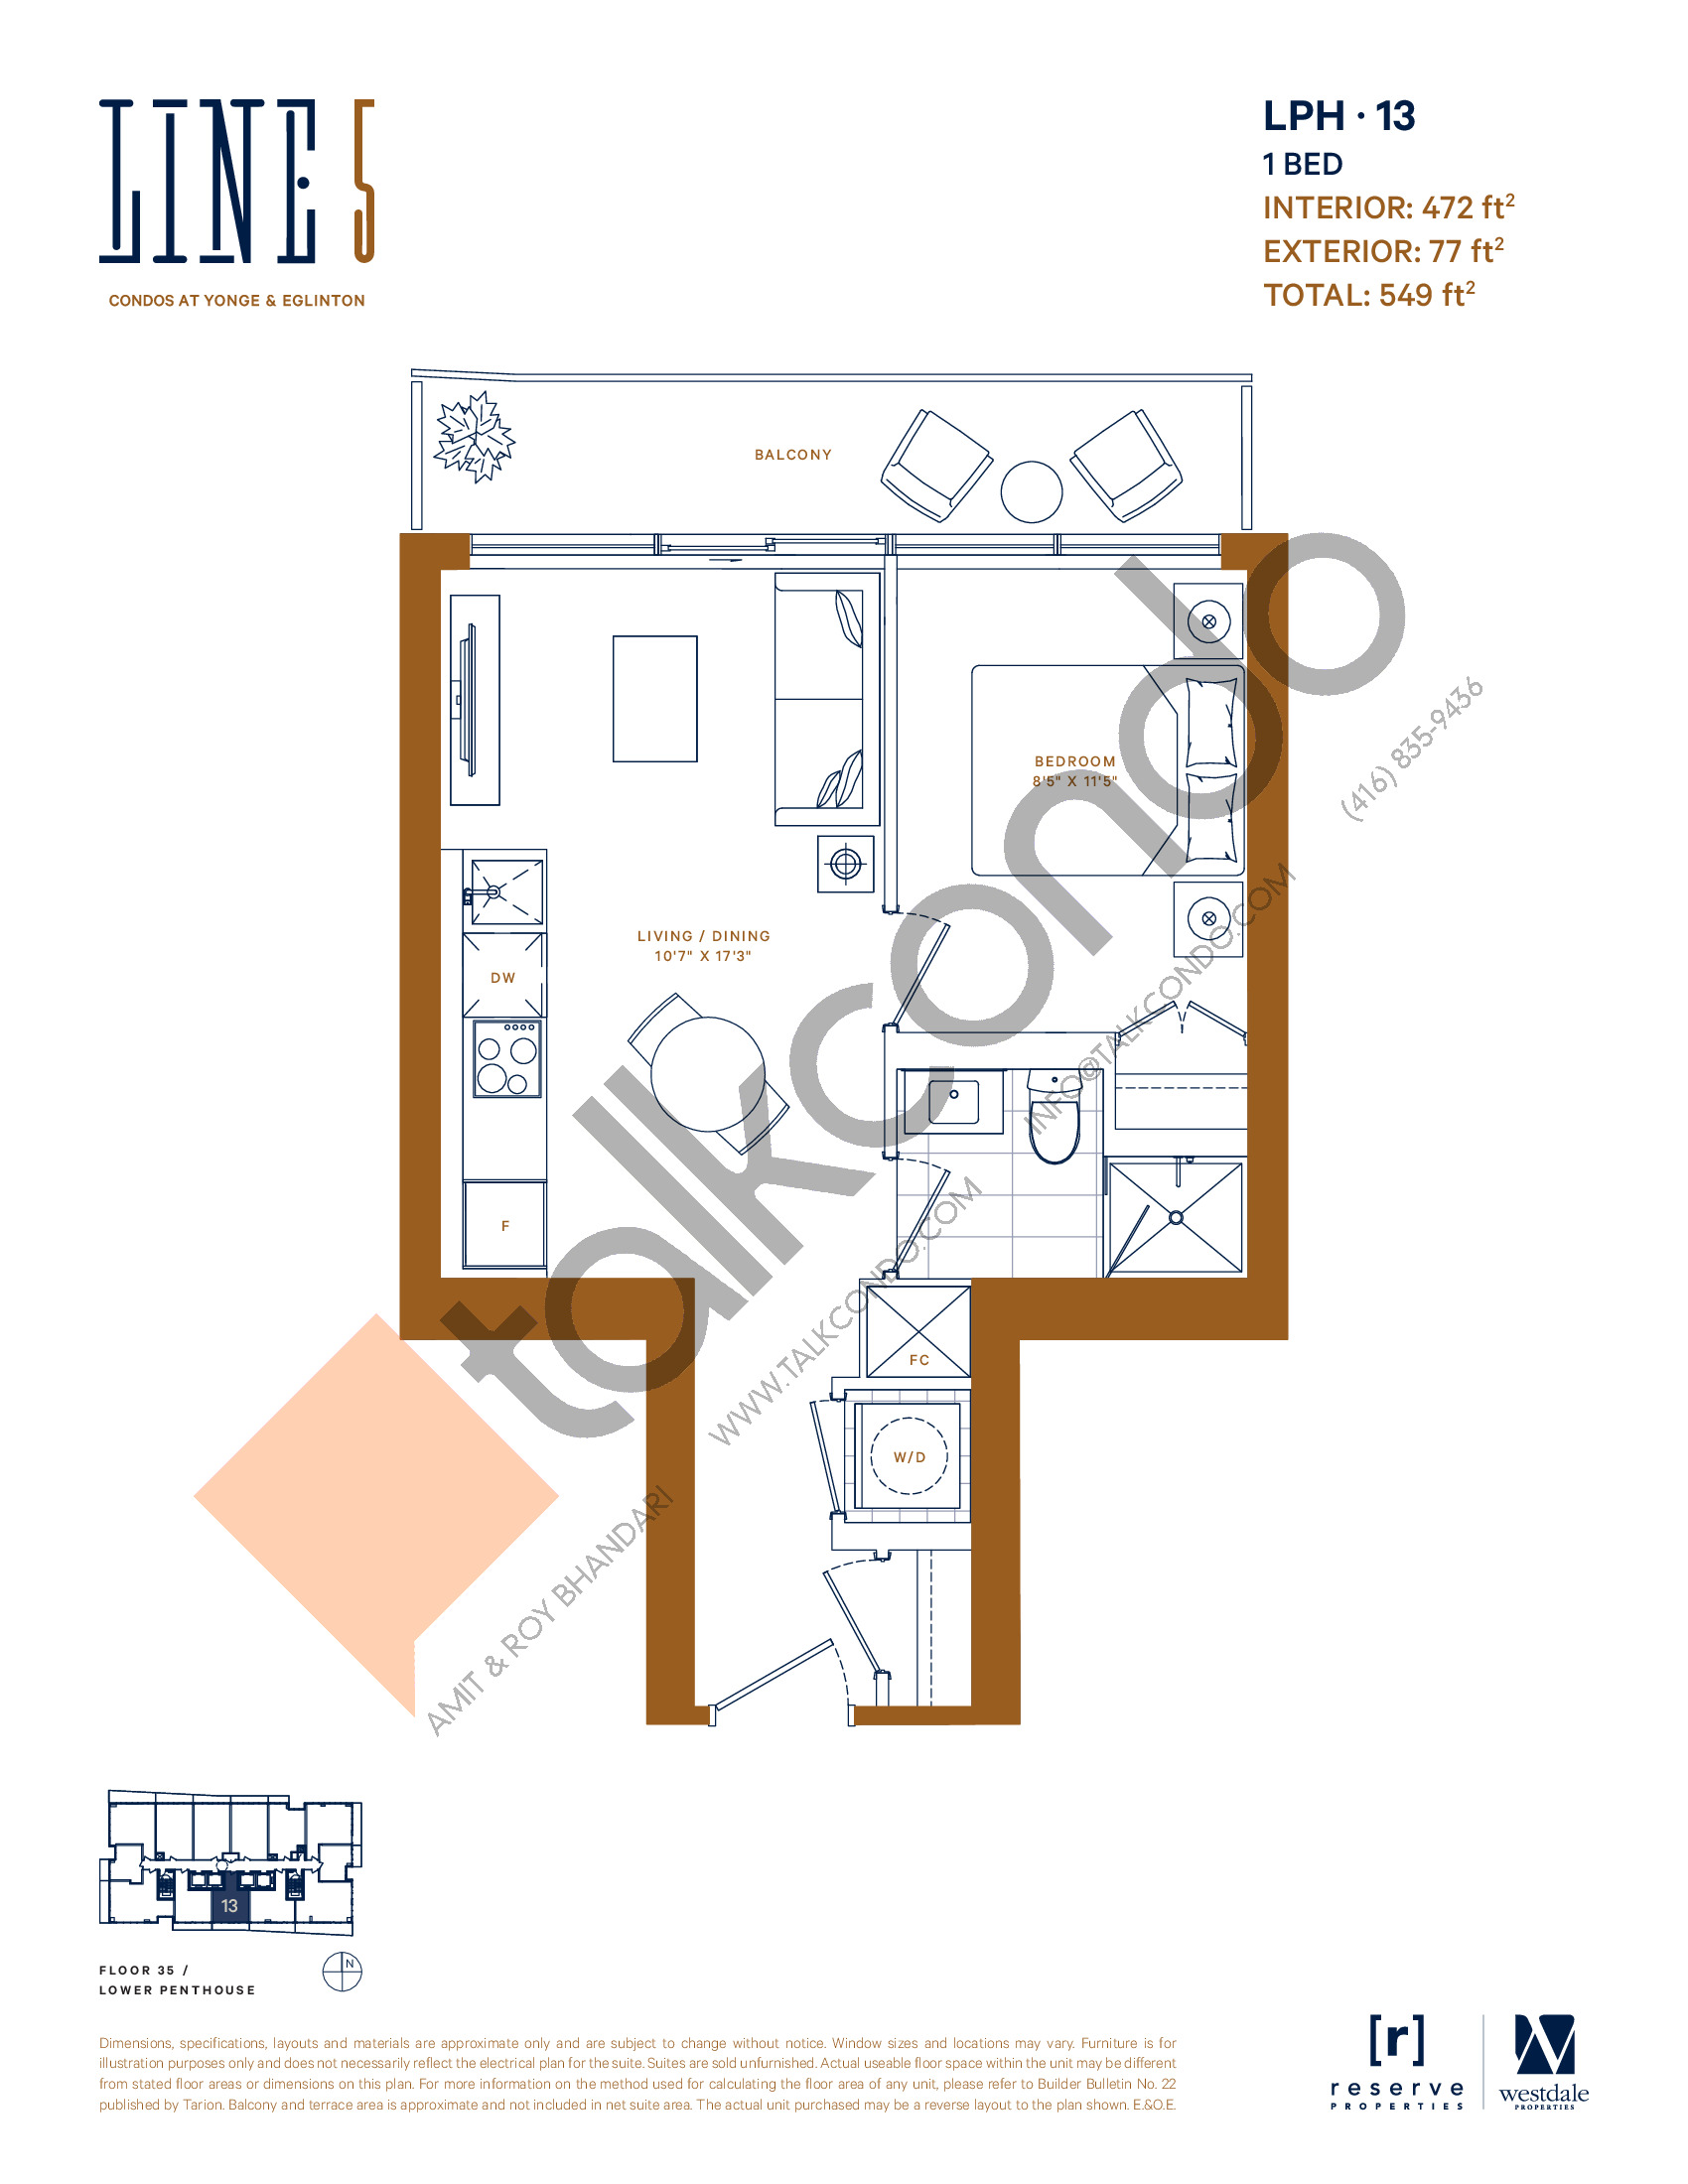 LPH-13 Floor Plan at Line 5 South Tower Condos - 472 sq.ft